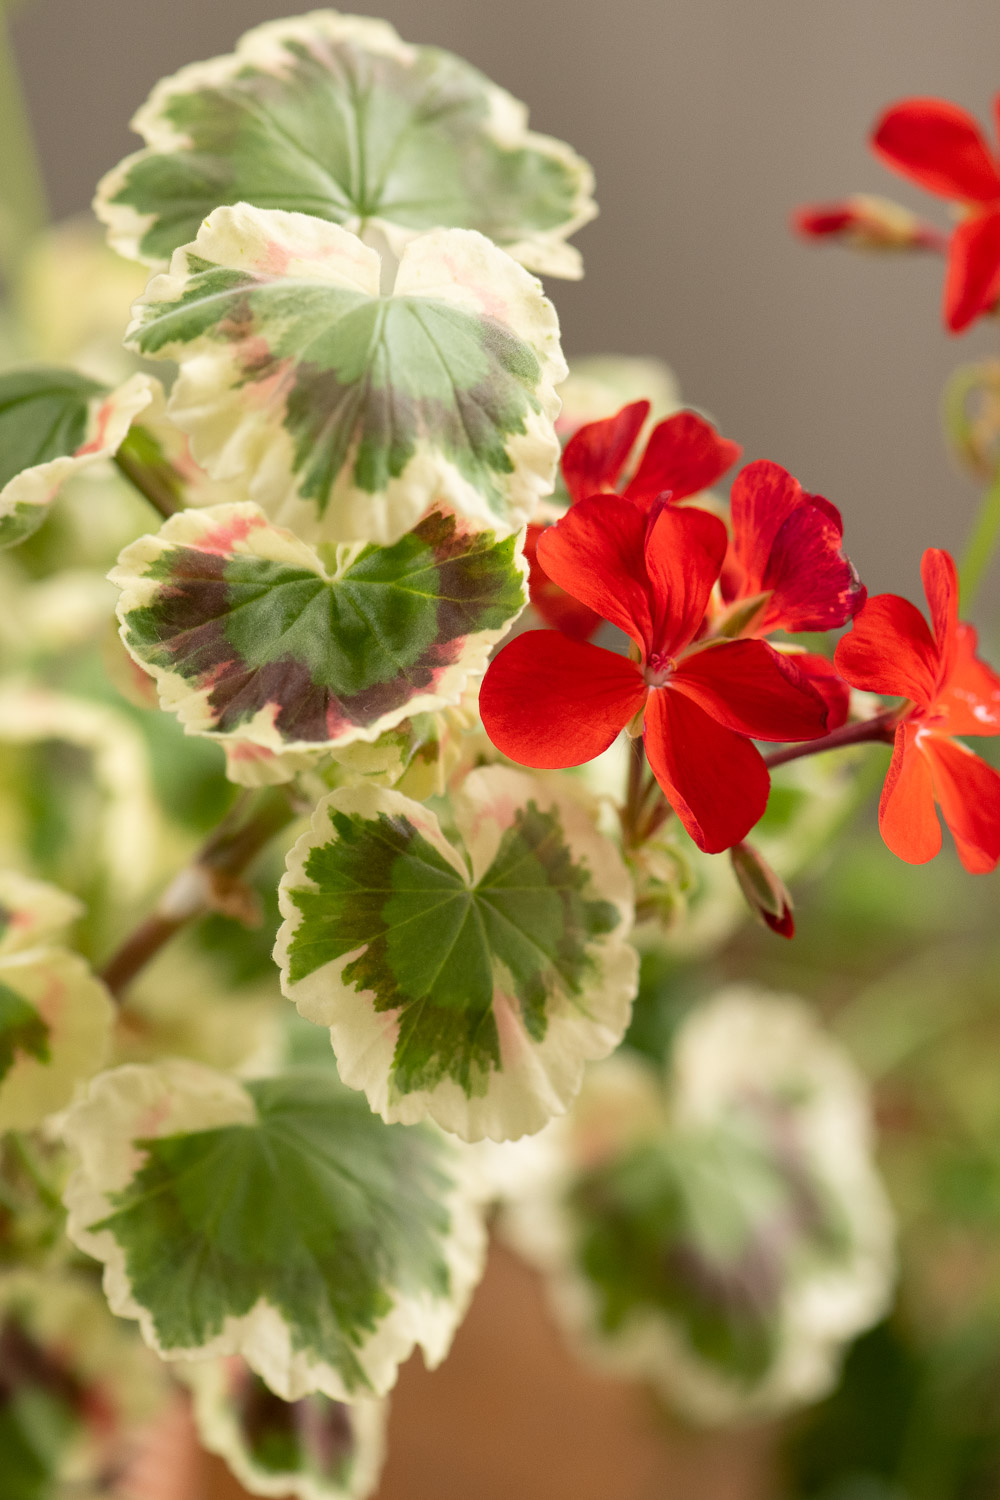 Miss Burdet-Coutts pelargoni